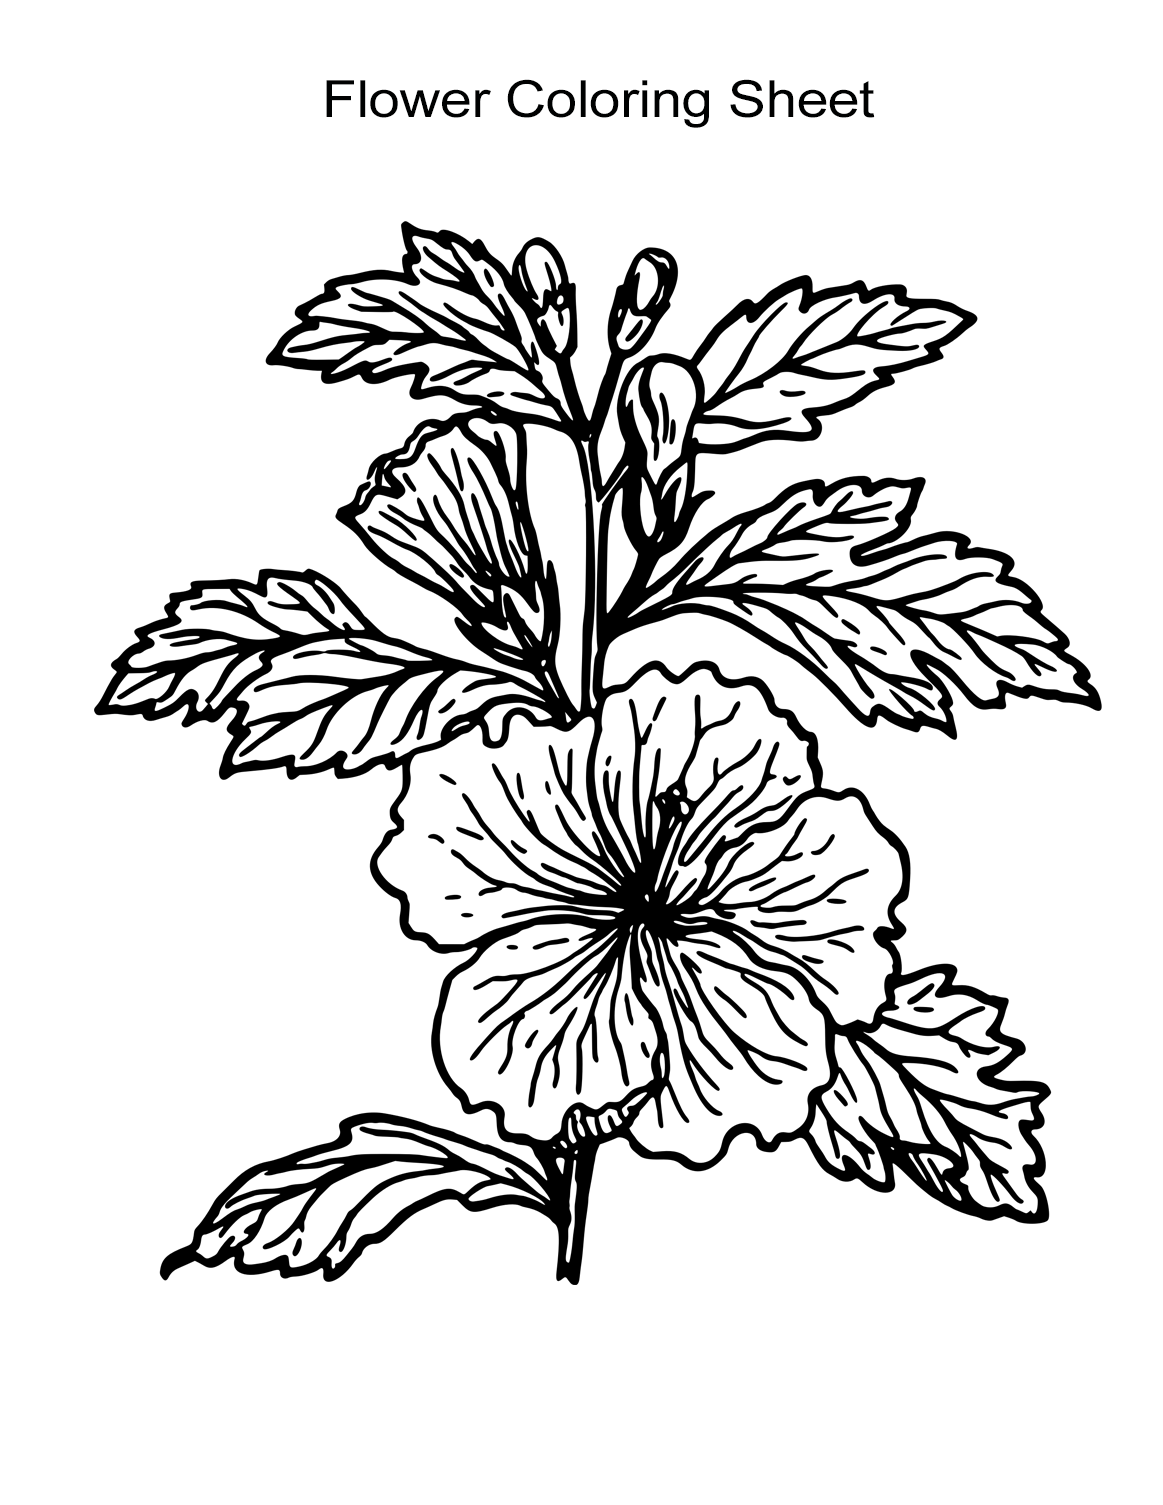 Resource Printable Flowers Coloring Pages | Howard Blog | 1505x1163